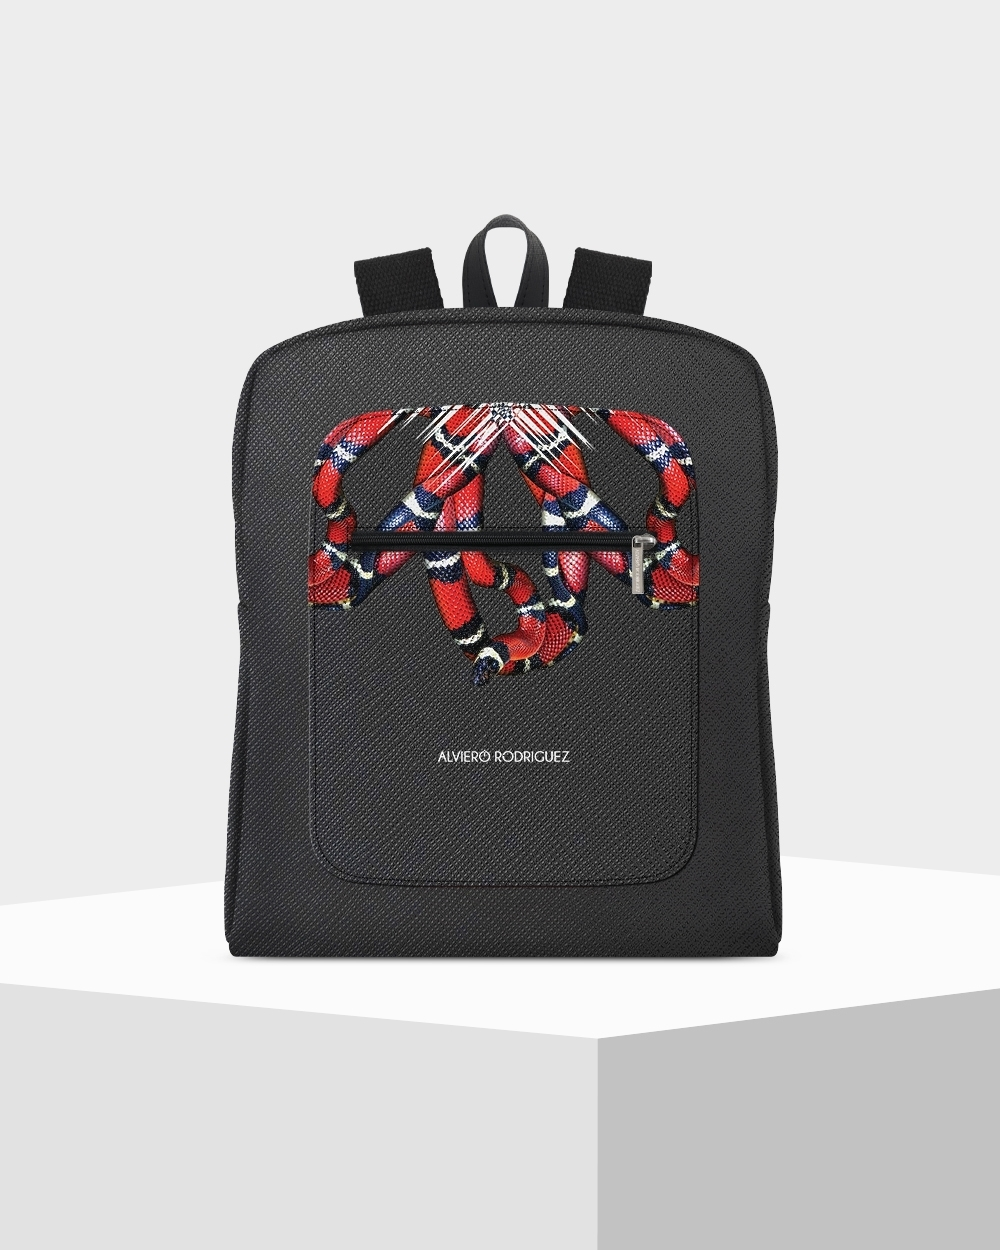 Shock backpack